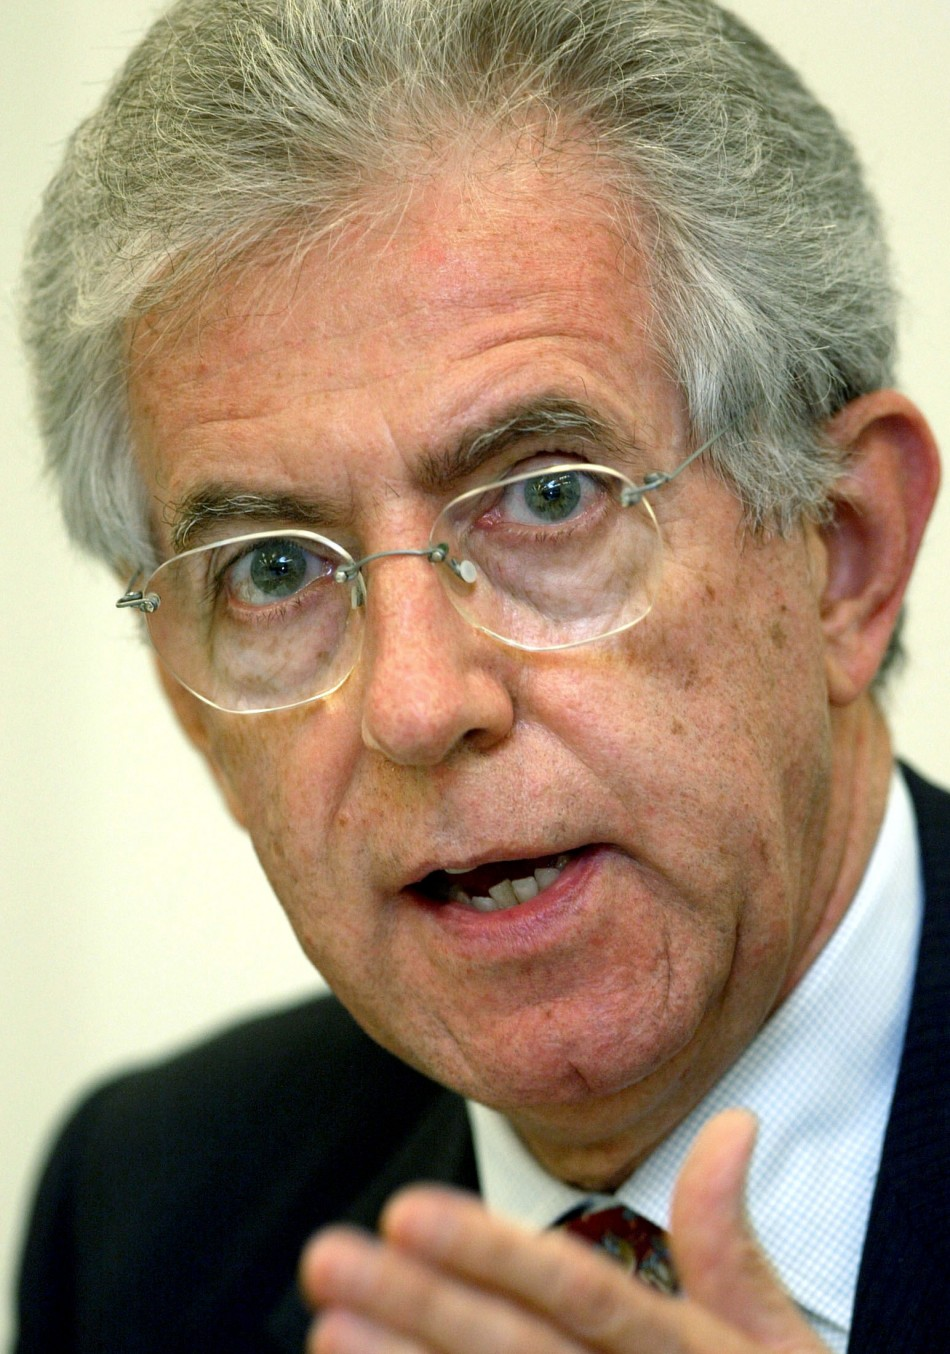 Economist and Former European Commissioner Mario Monti